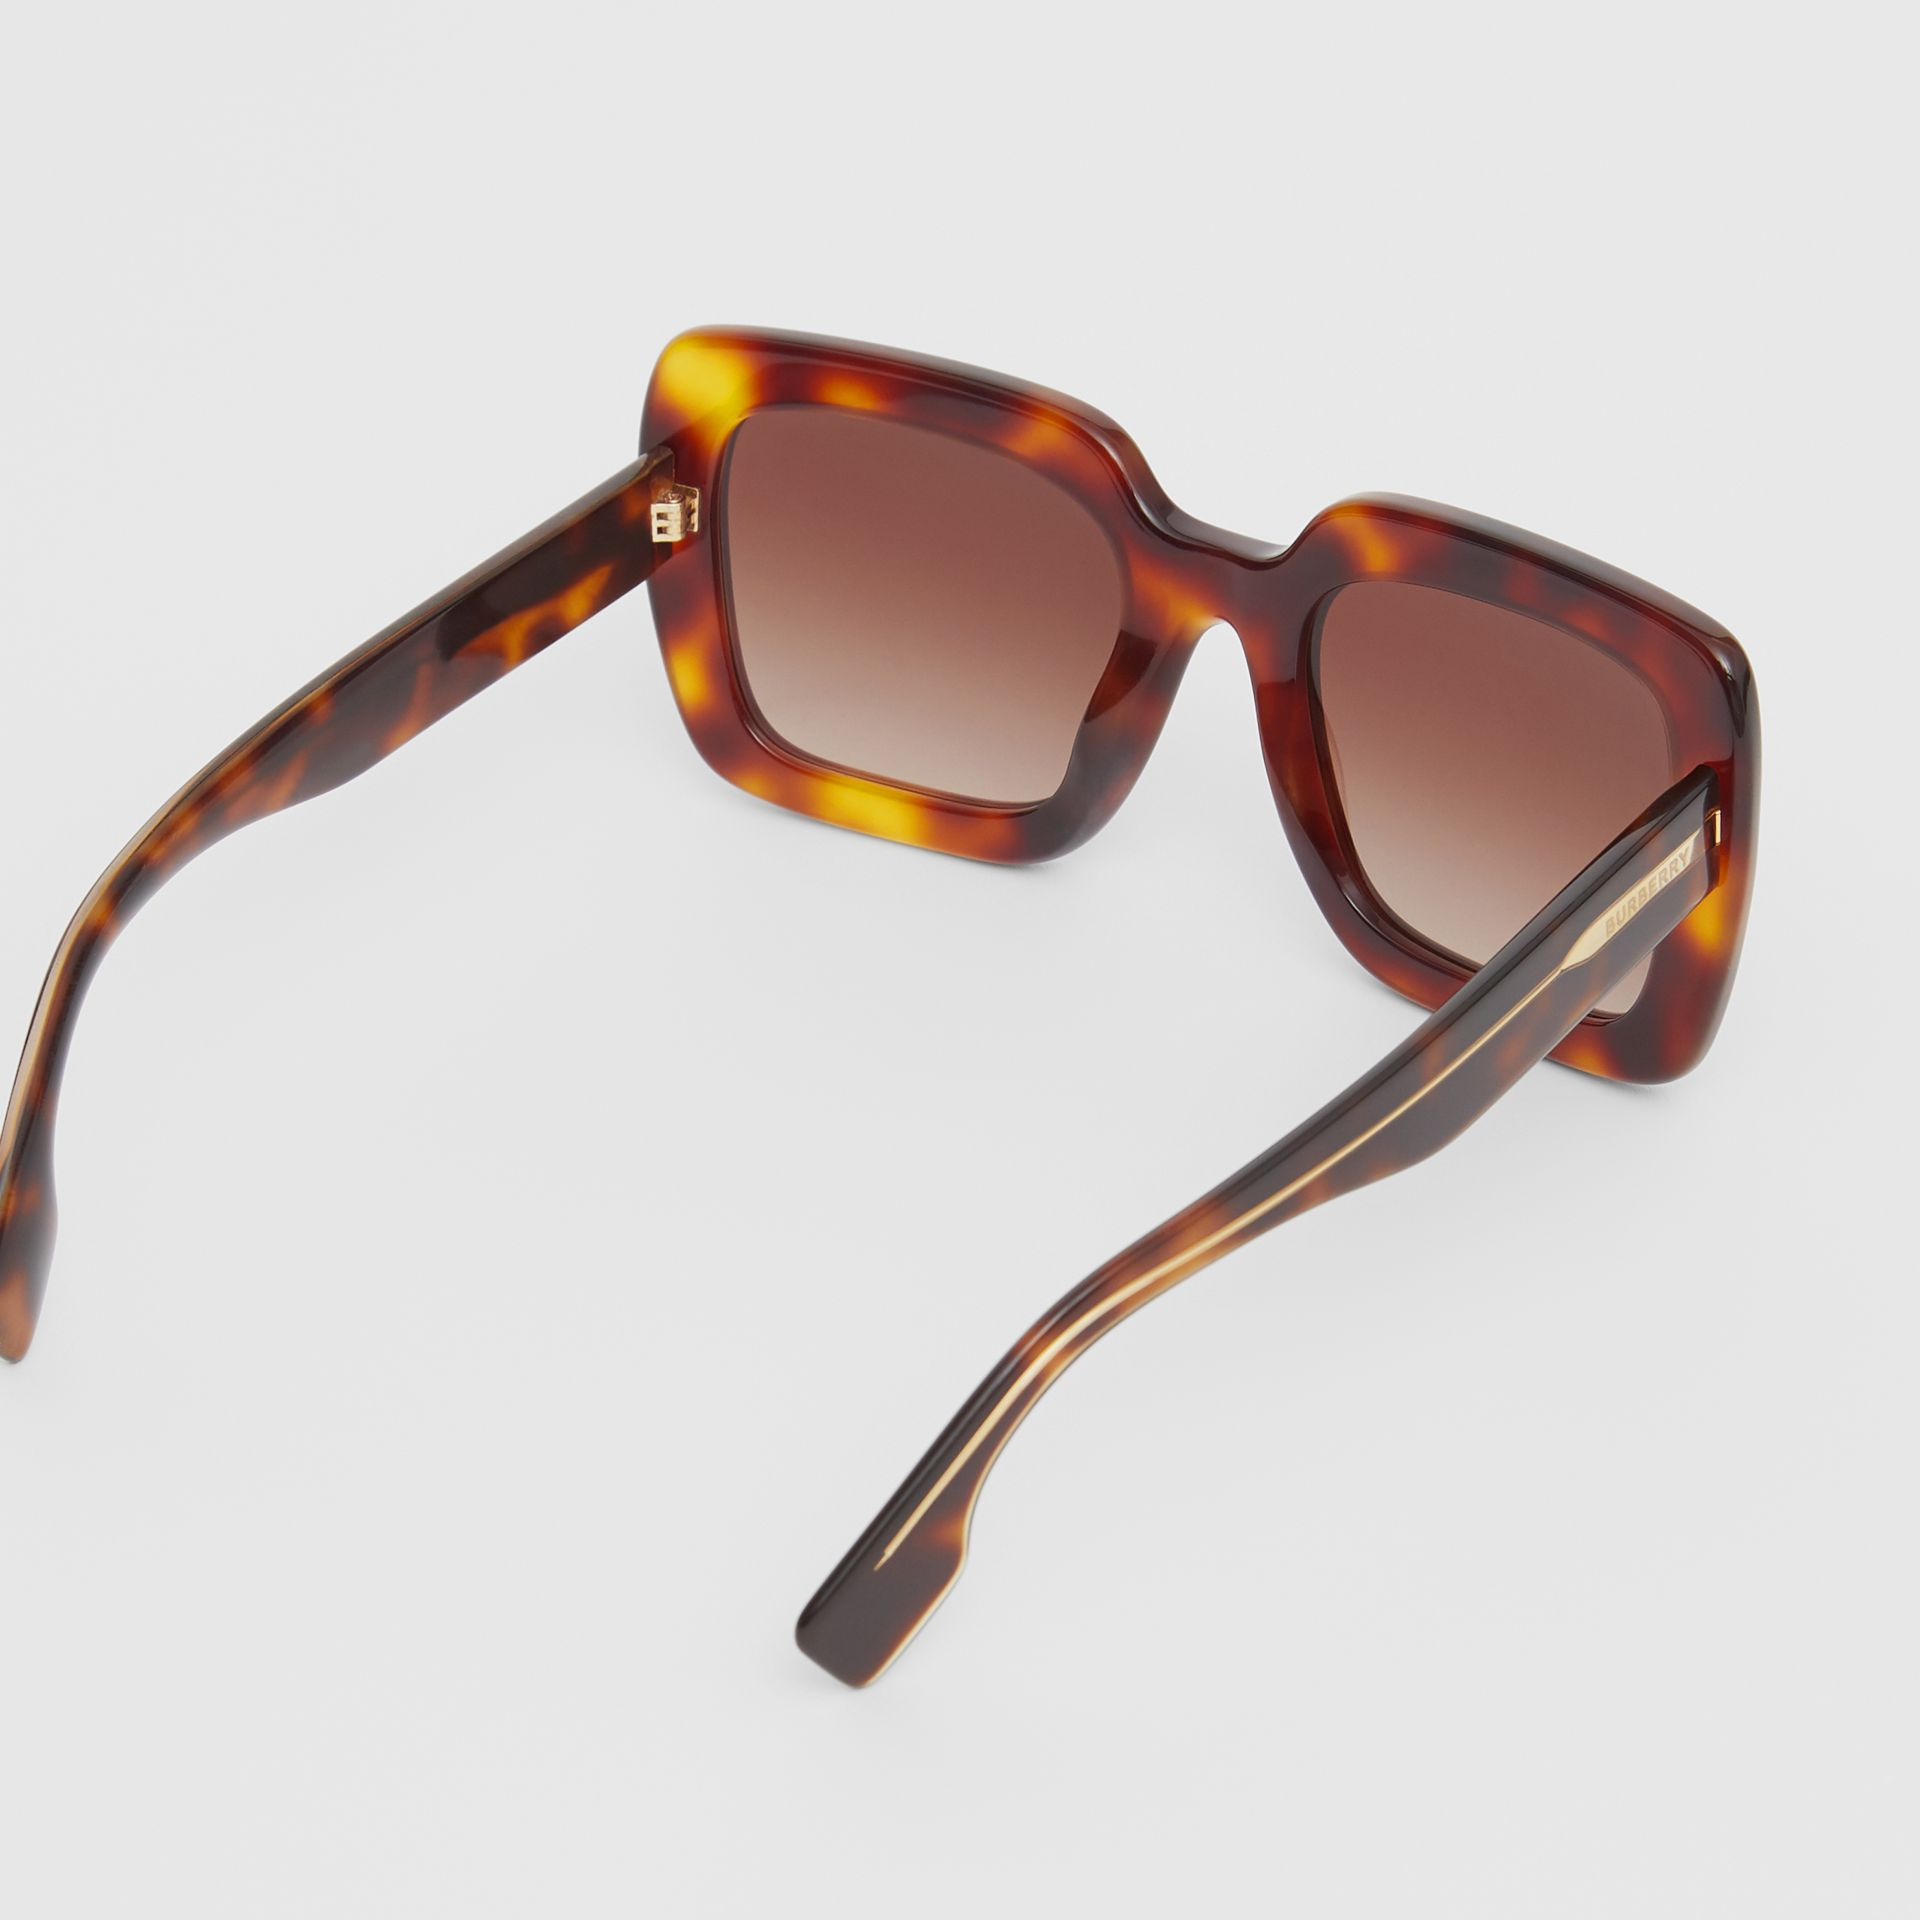 Oversized Square Frame Sunglasses in Tortoiseshell - Women | Burberry United Kingdom - gallery image 4